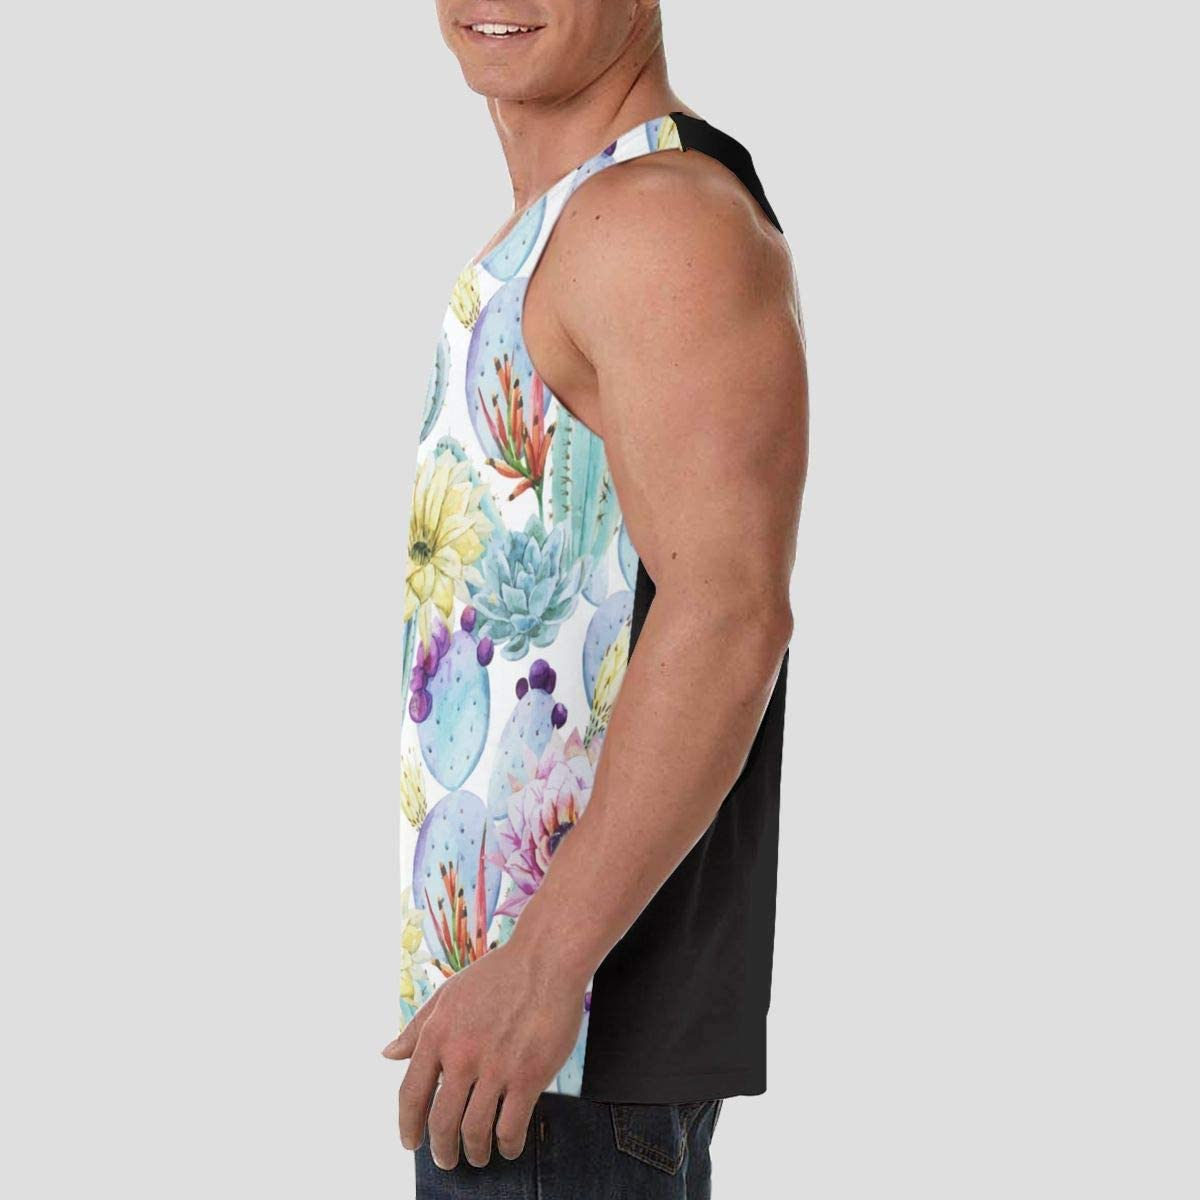 Active Athletic Sleeveless Undershirt for Youth /& Adult Men Boys Sweatproof Workout /& Training Activewear Tank Tops Vests Casual Soft Athletic Shirts LIN Cactus Succulents